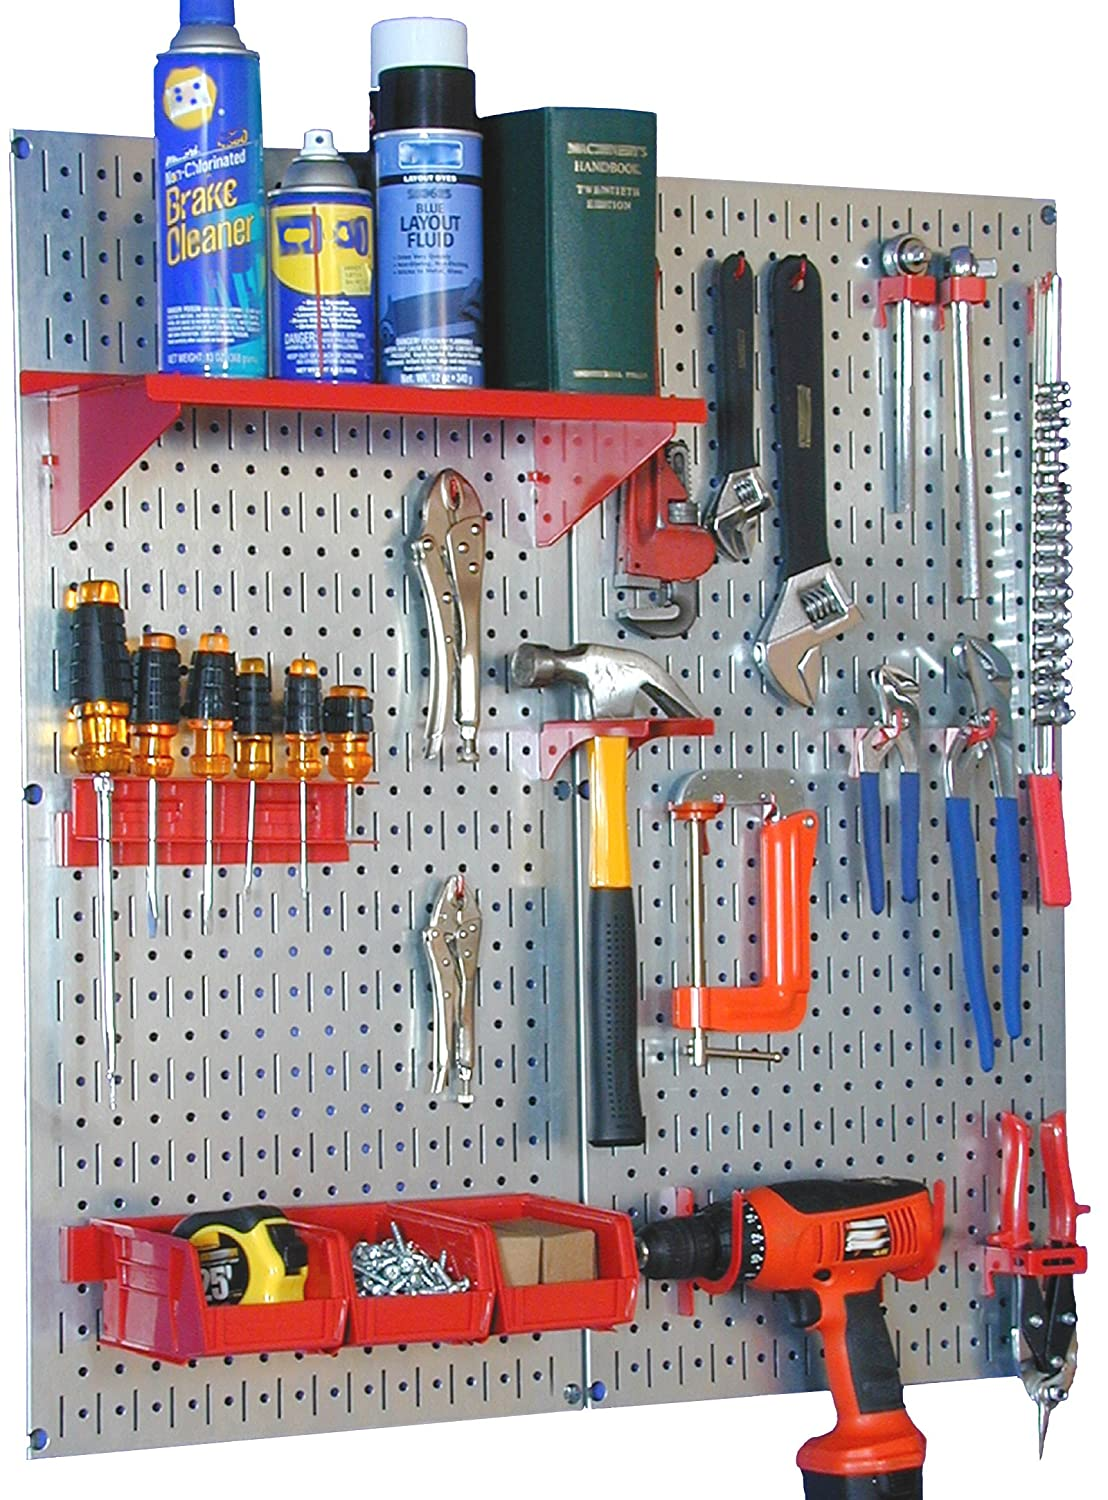 Amazon wall control 30 wgl 200gvr galvanized steel pegboard amazon wall control 30 wgl 200gvr galvanized steel pegboard tool organizer home improvement publicscrutiny Images